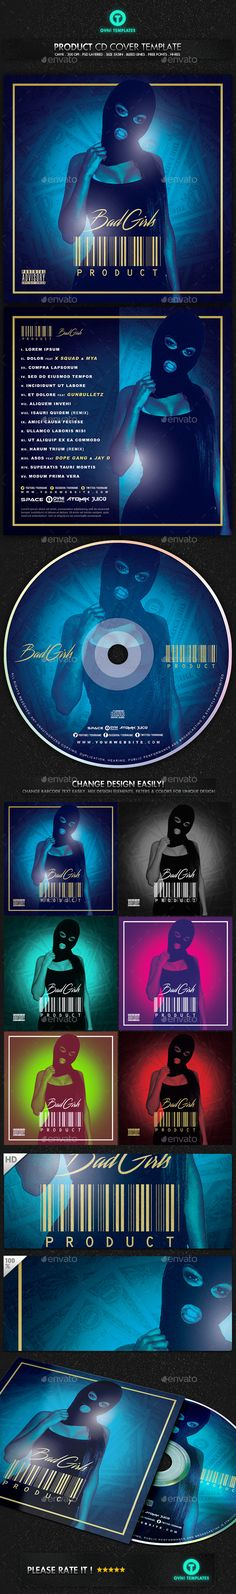 Loyalty Mixtape  Cd Cover Template  FontsLogosIcons